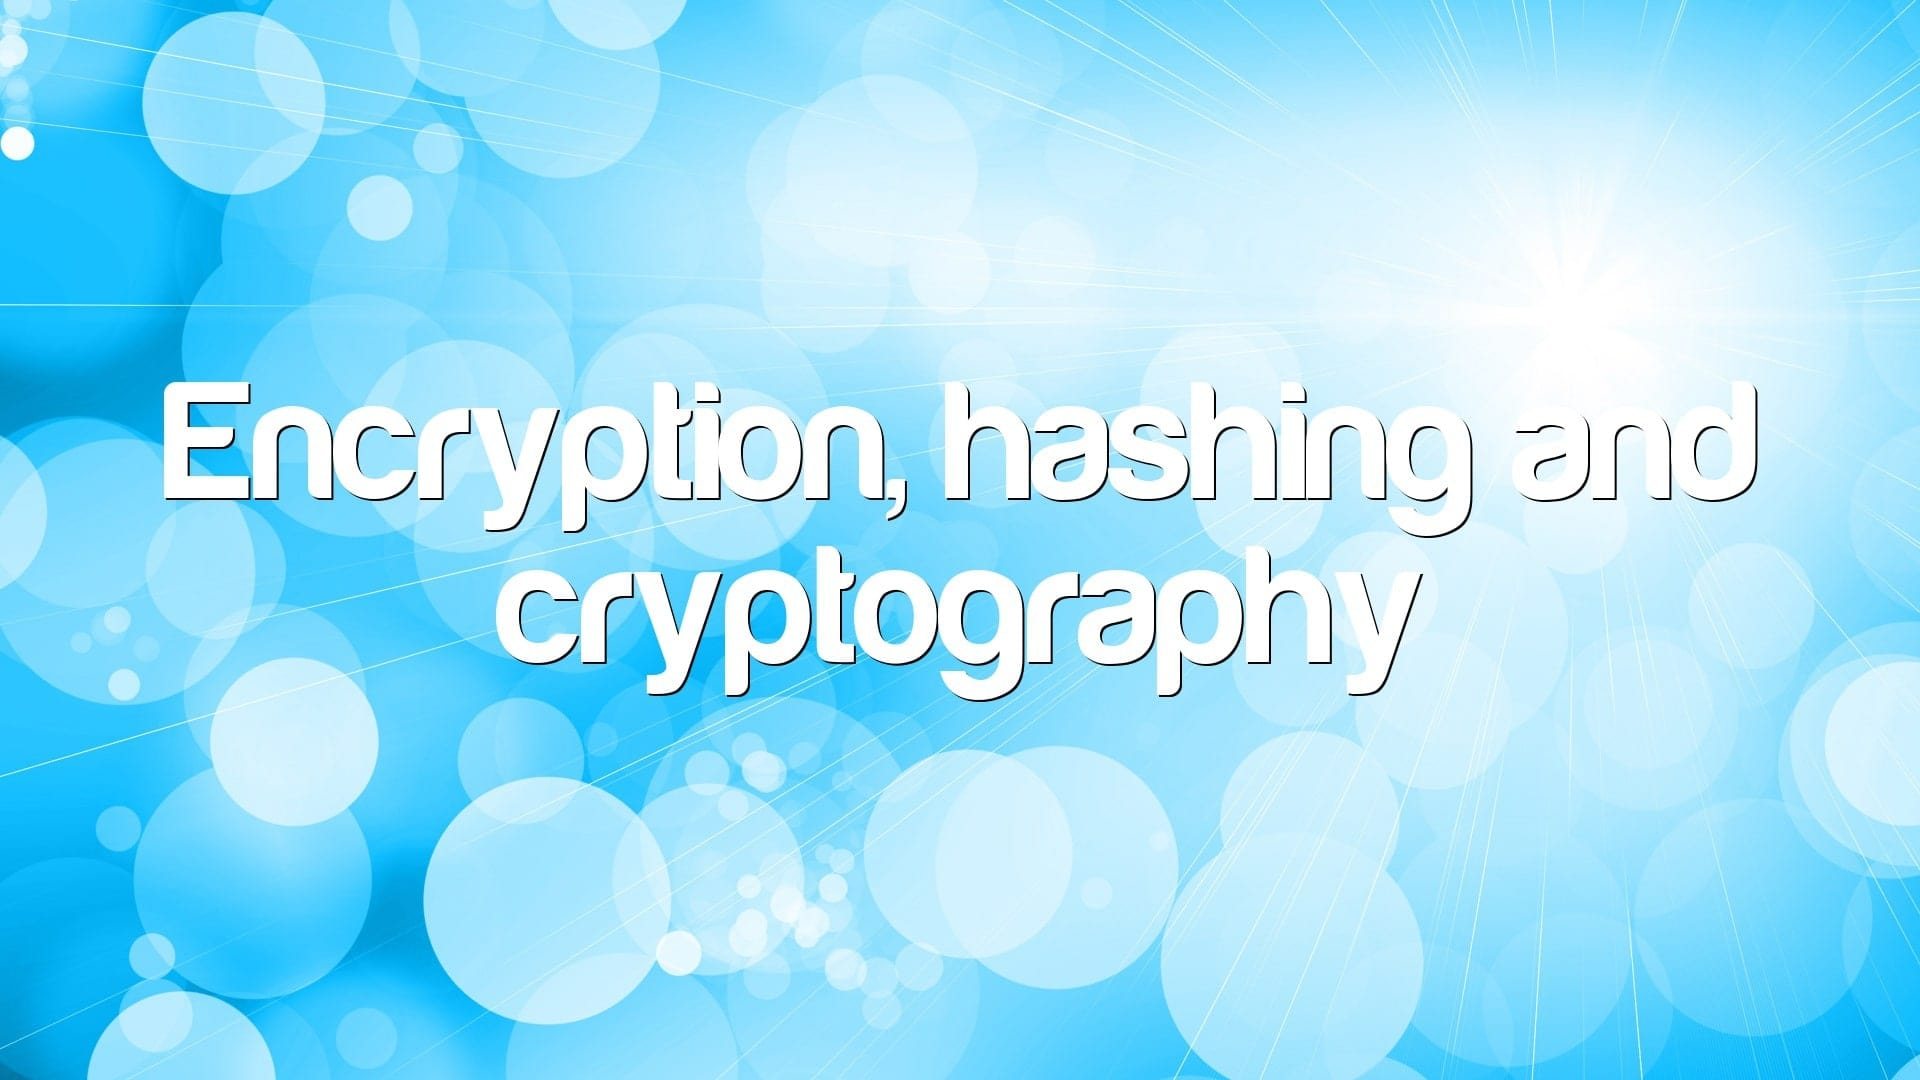 Encryption, hashing and cryptography